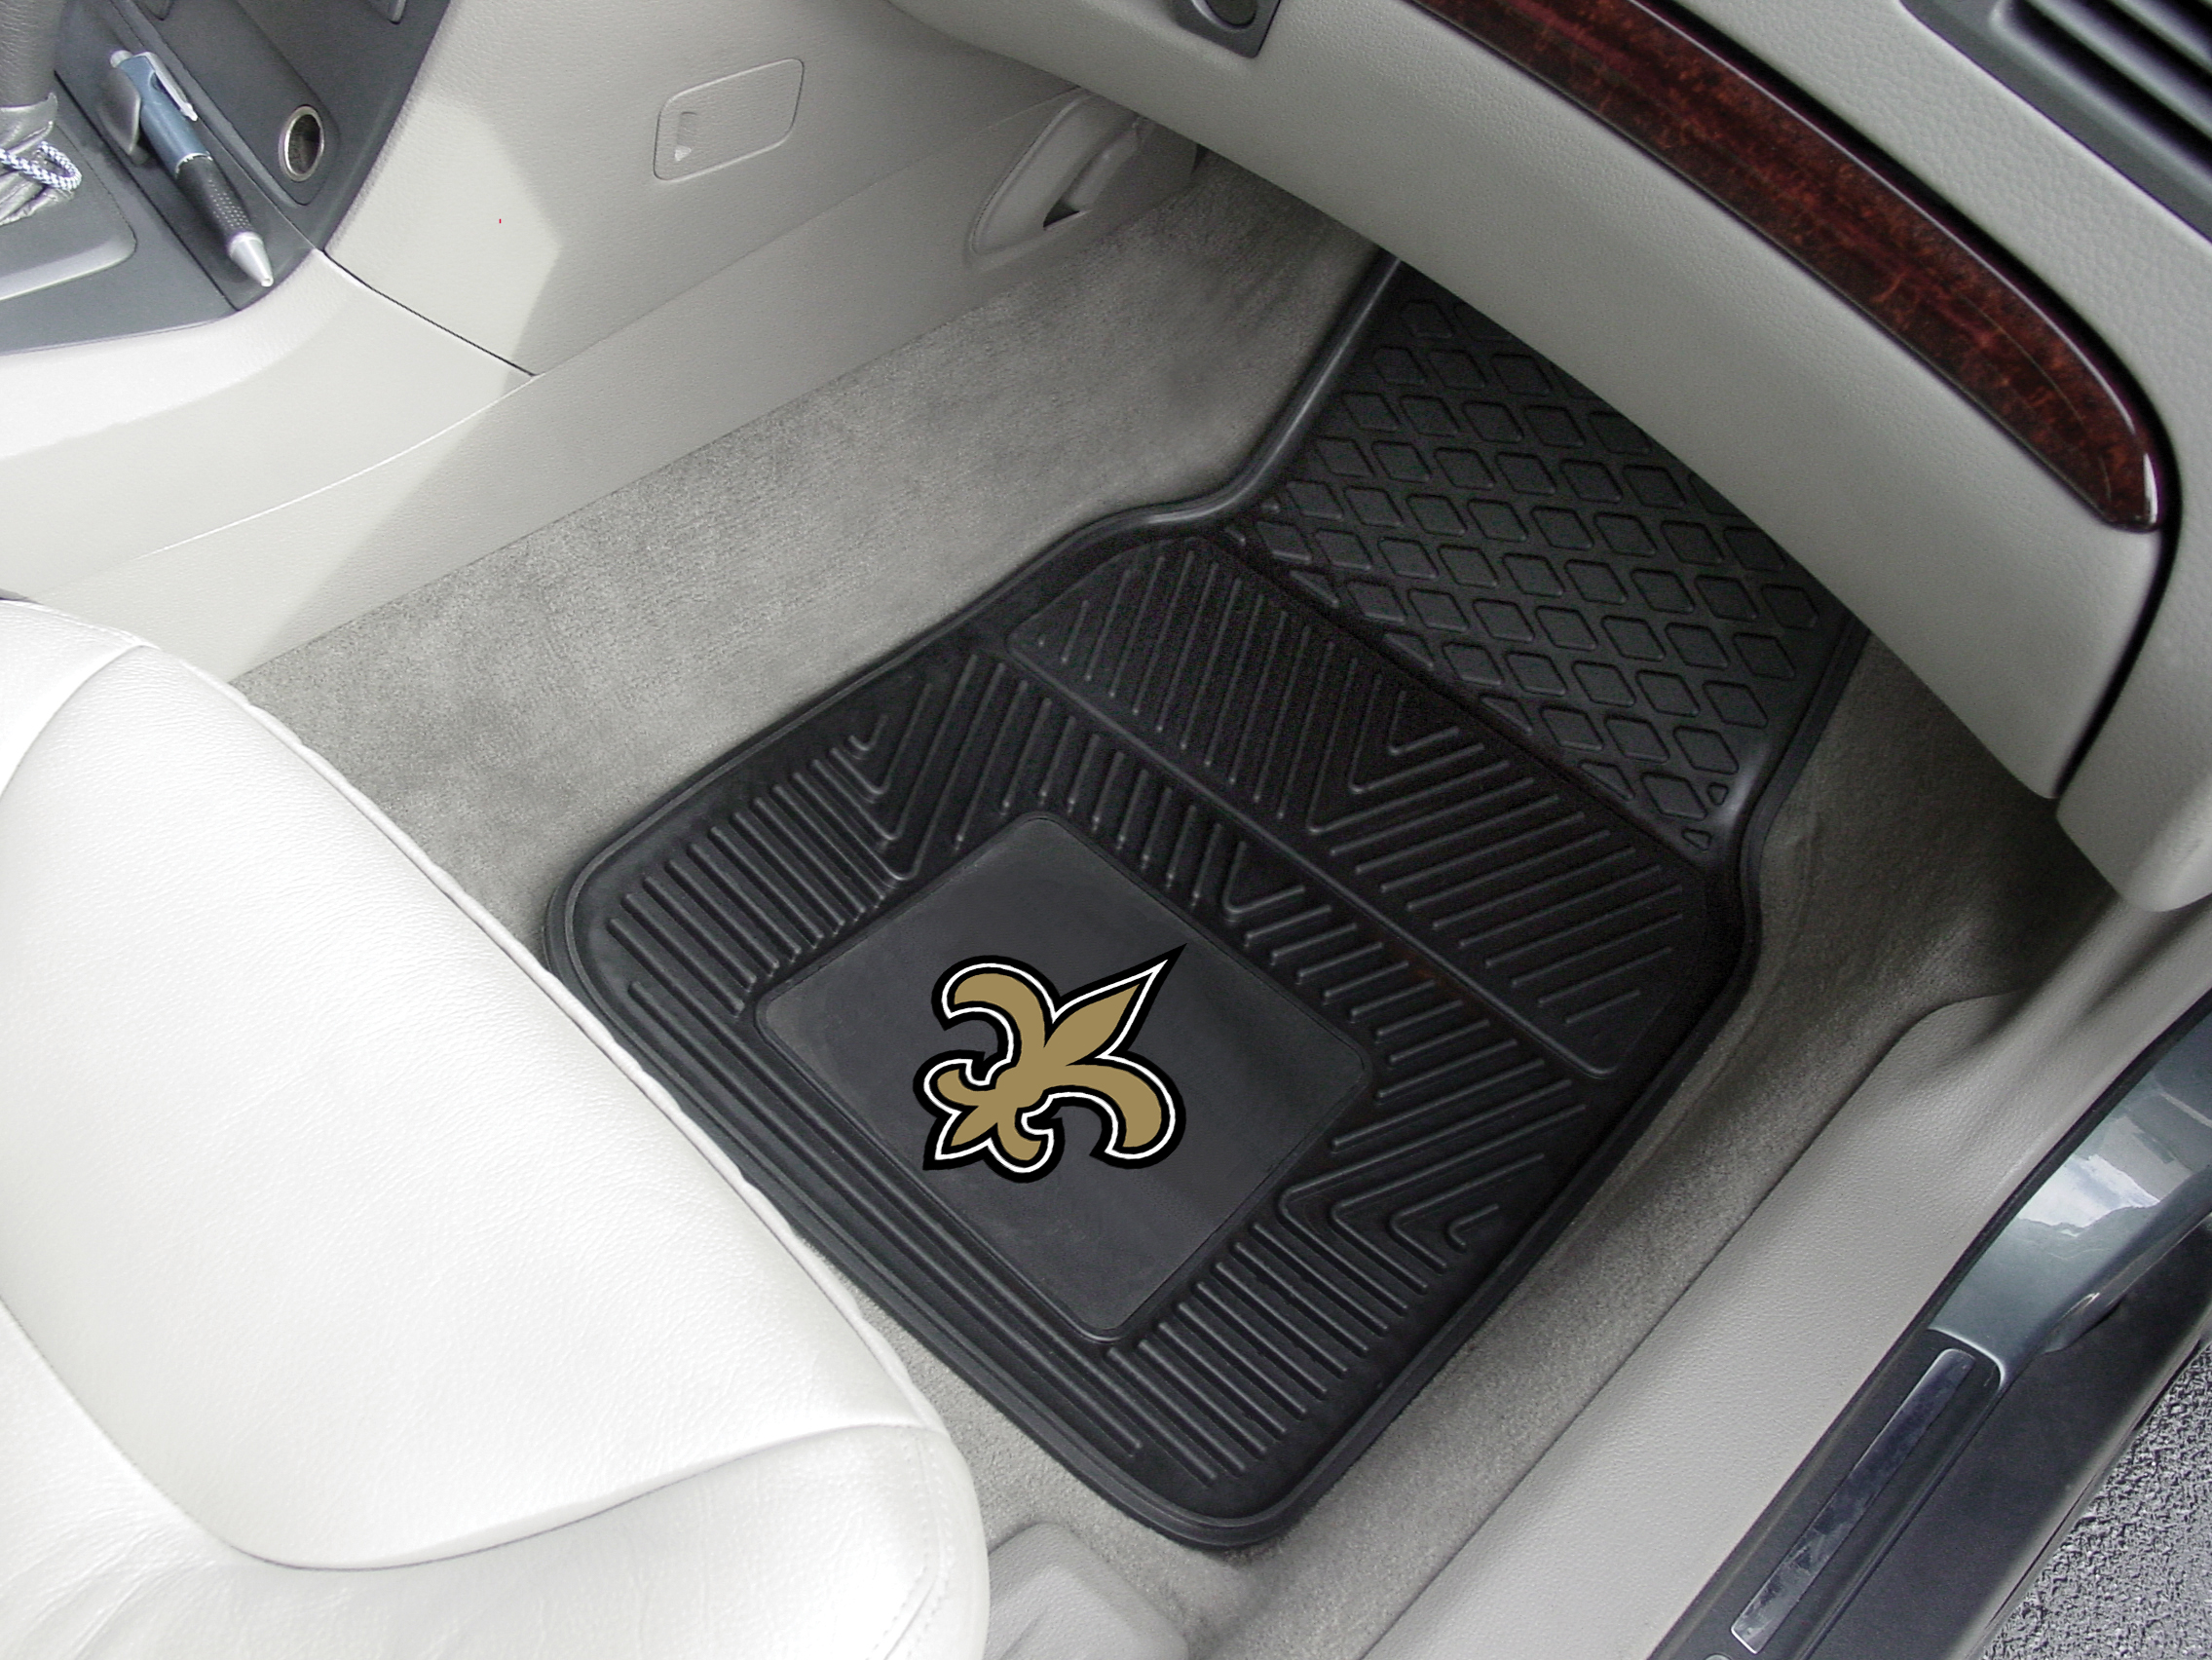 New Orleans Saints NFL Football Logo Car Floor Mats - Heavy-Duty Vinyl